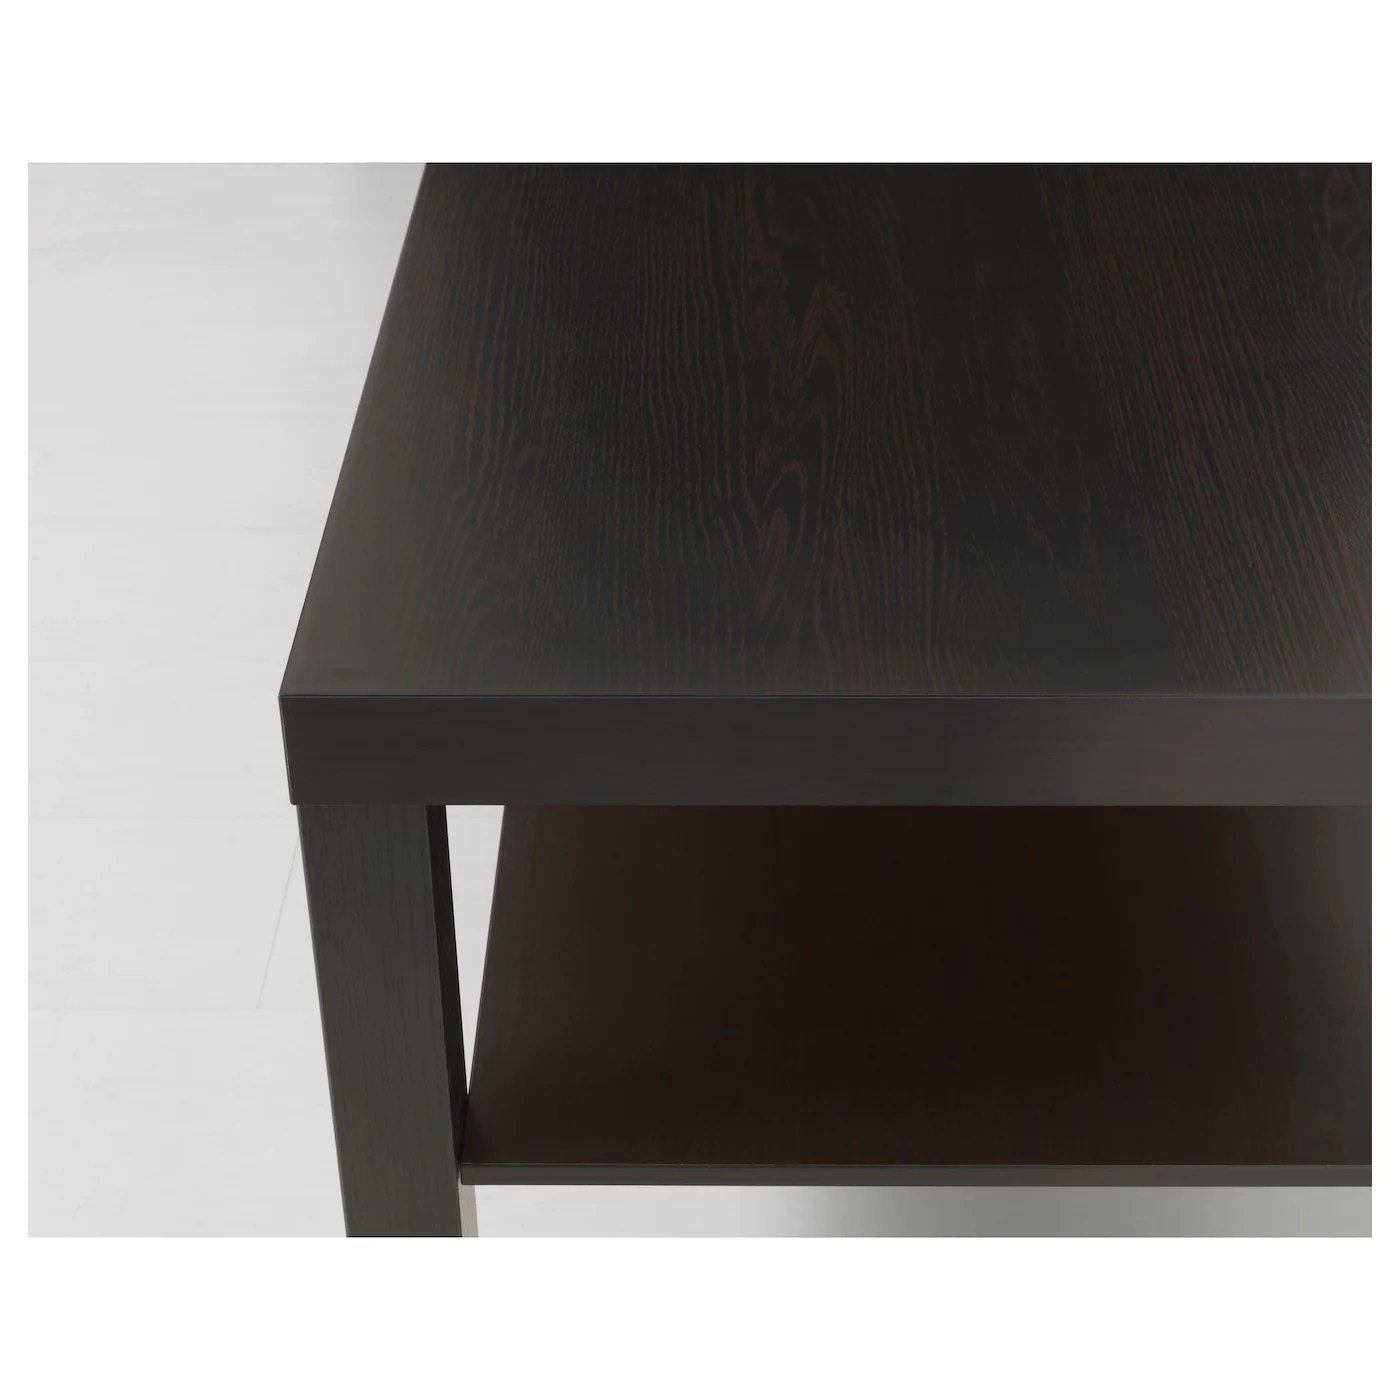 Ikea Table Basse Noir Lack Table Basse Brun Noir 90 X 55 Cm Ikea